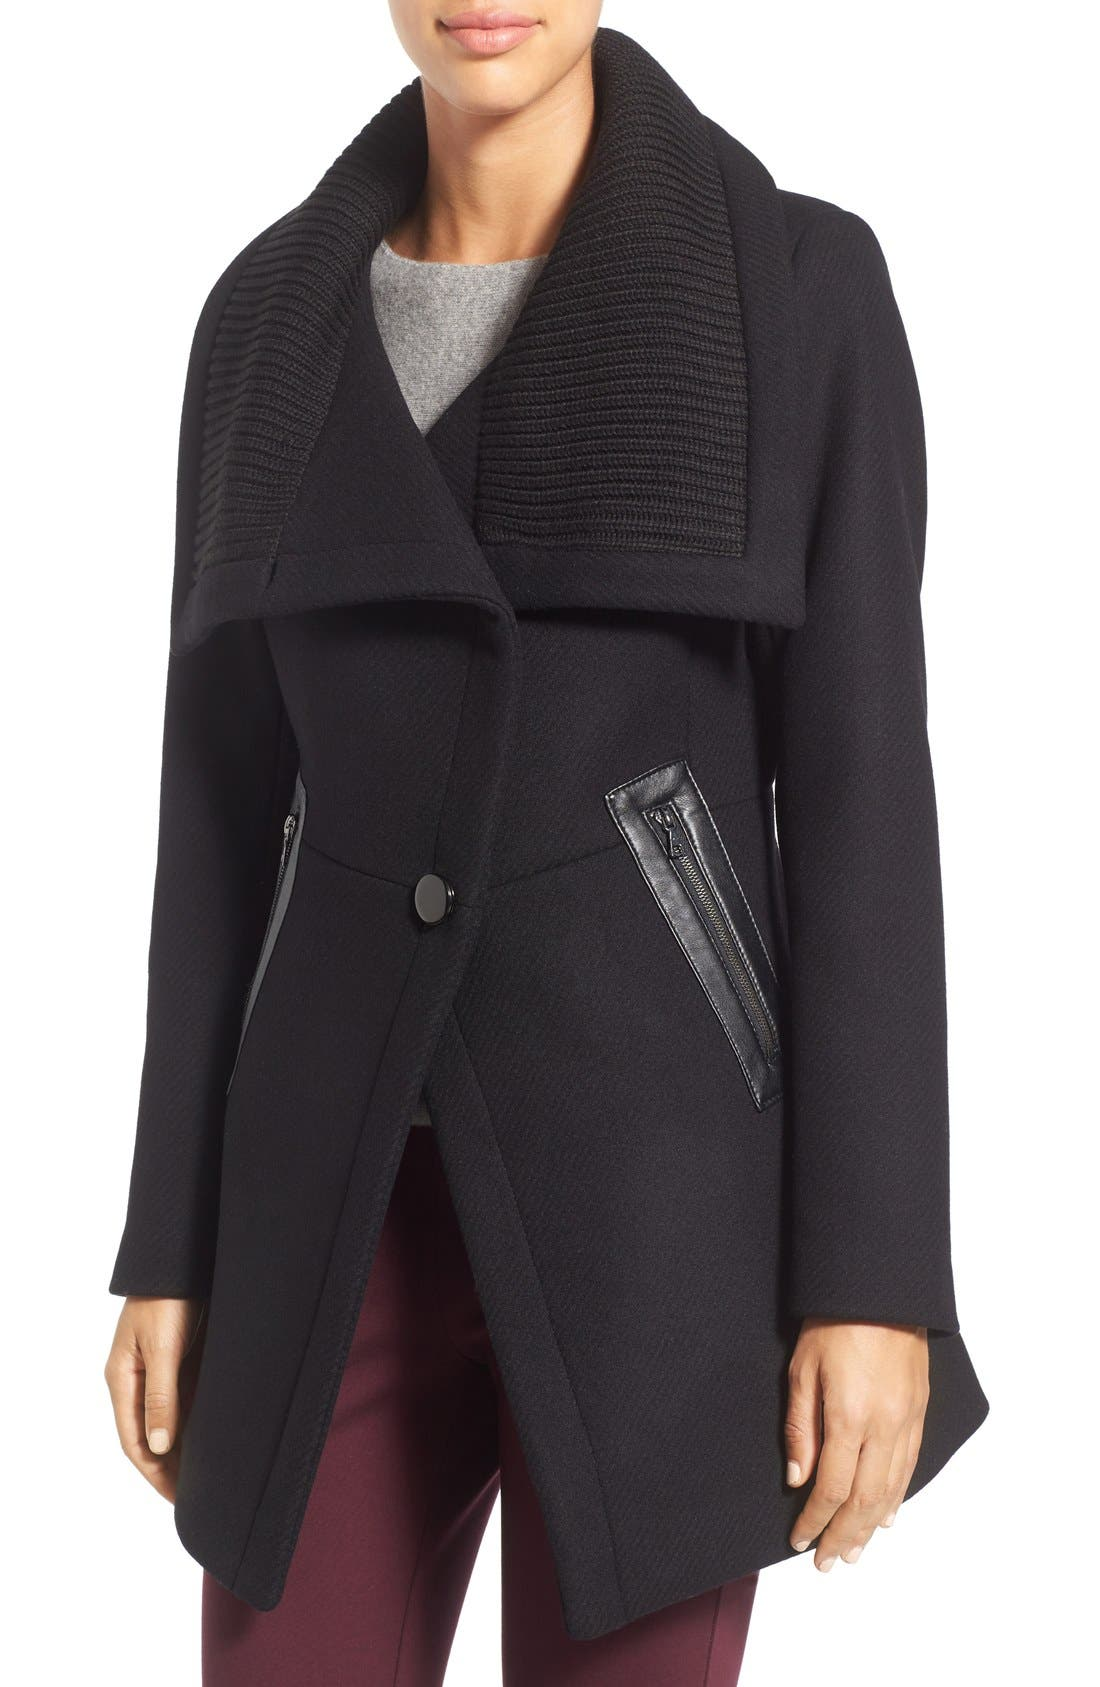 'Maddi' Knit Collar Cutaway Wool Blend Coat,                         Main,                         color, Black